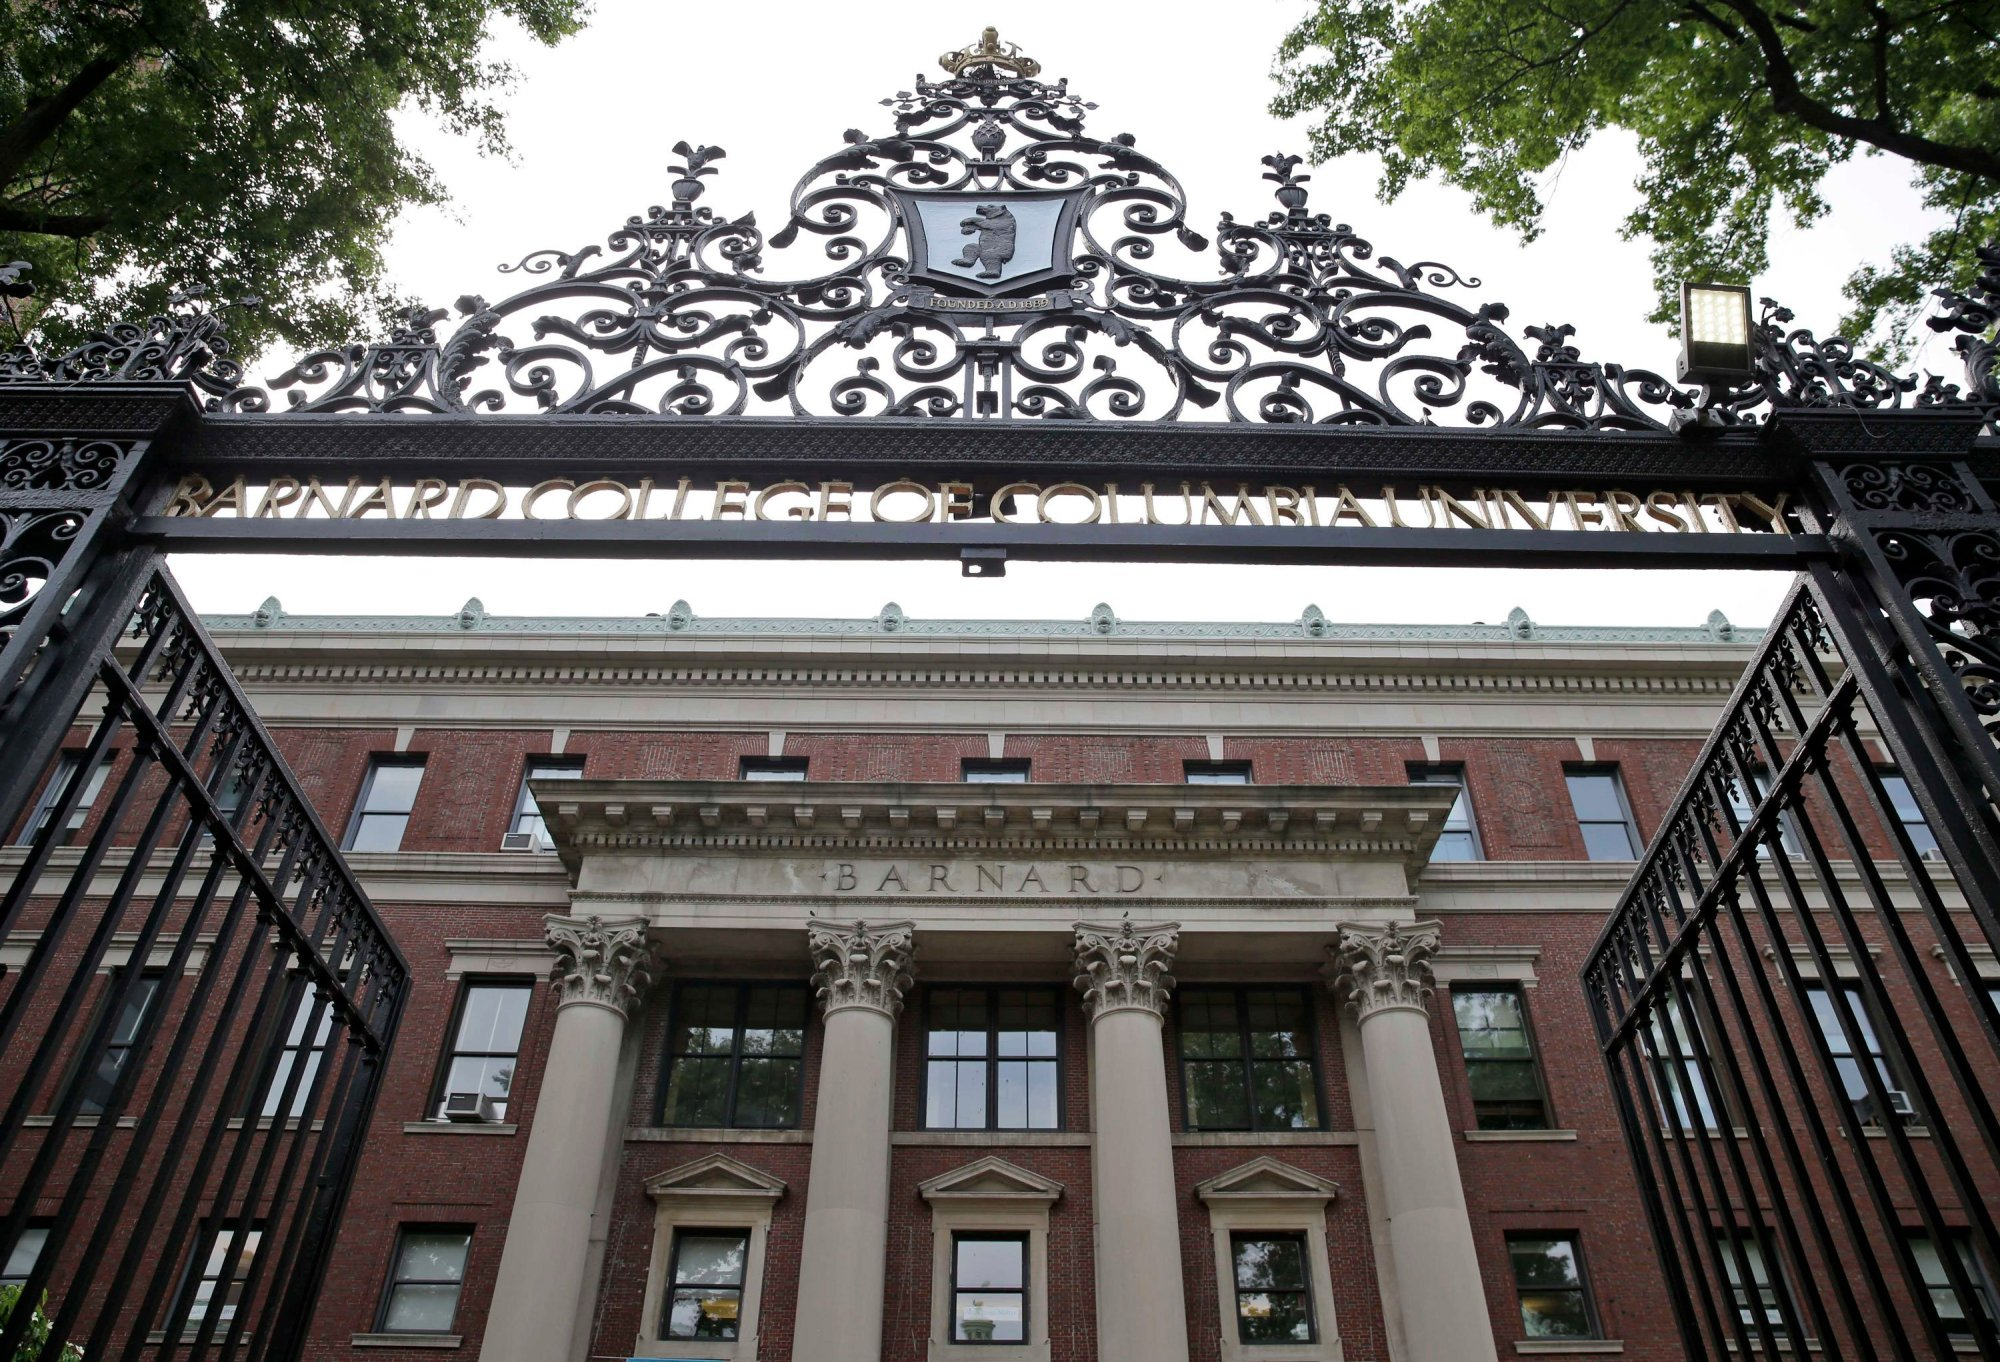 An 18-year-old woman who investigators believe to be a Barnard College student died Wednesday after she was found with several stab wounds just blocks from the school, a law enforcement official tells CNN.